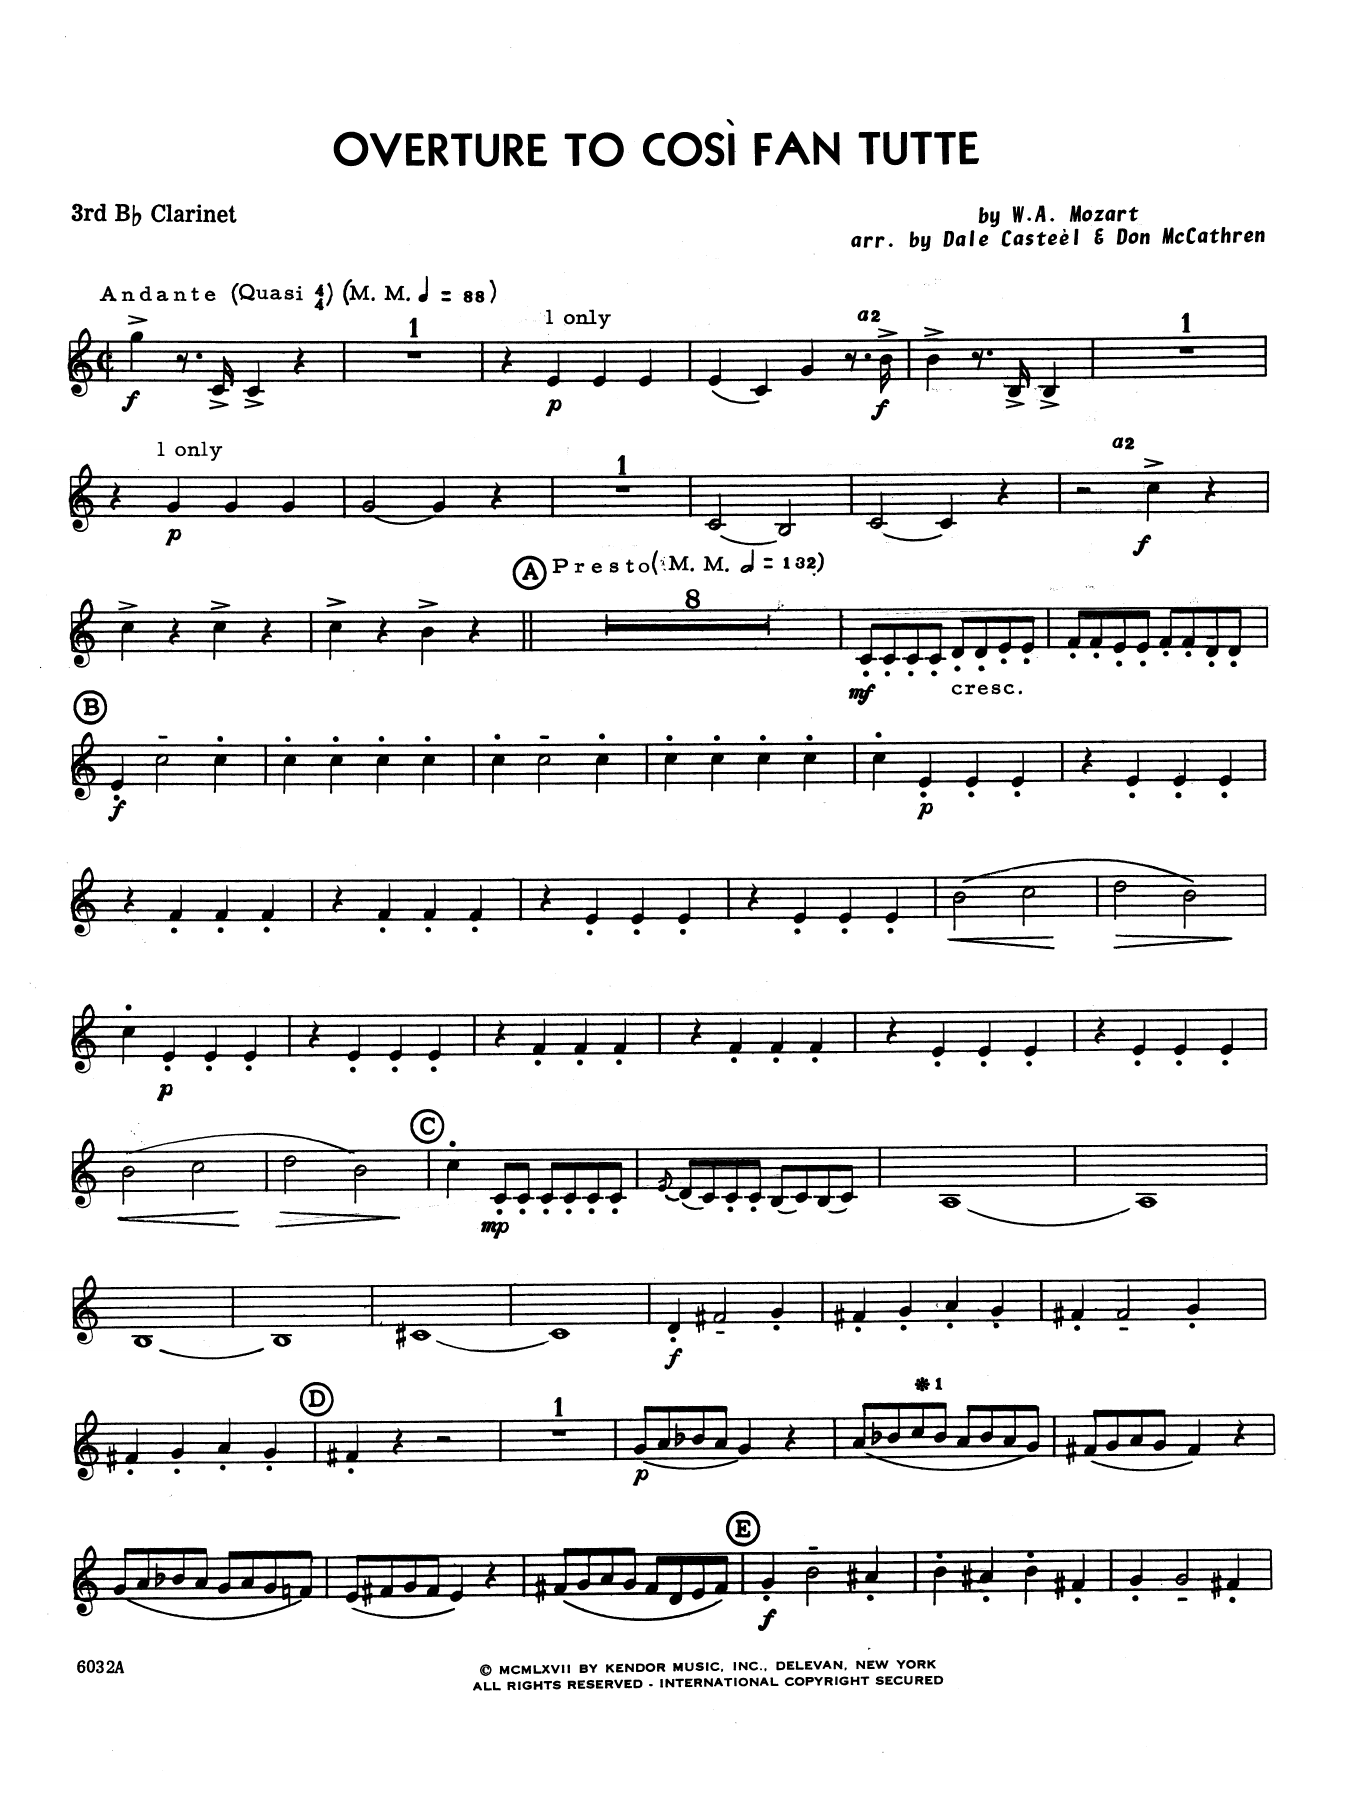 Dale Casteel Overture to Cosi Fan Tutte - 3rd Bb Clarinet sheet music notes printable PDF score